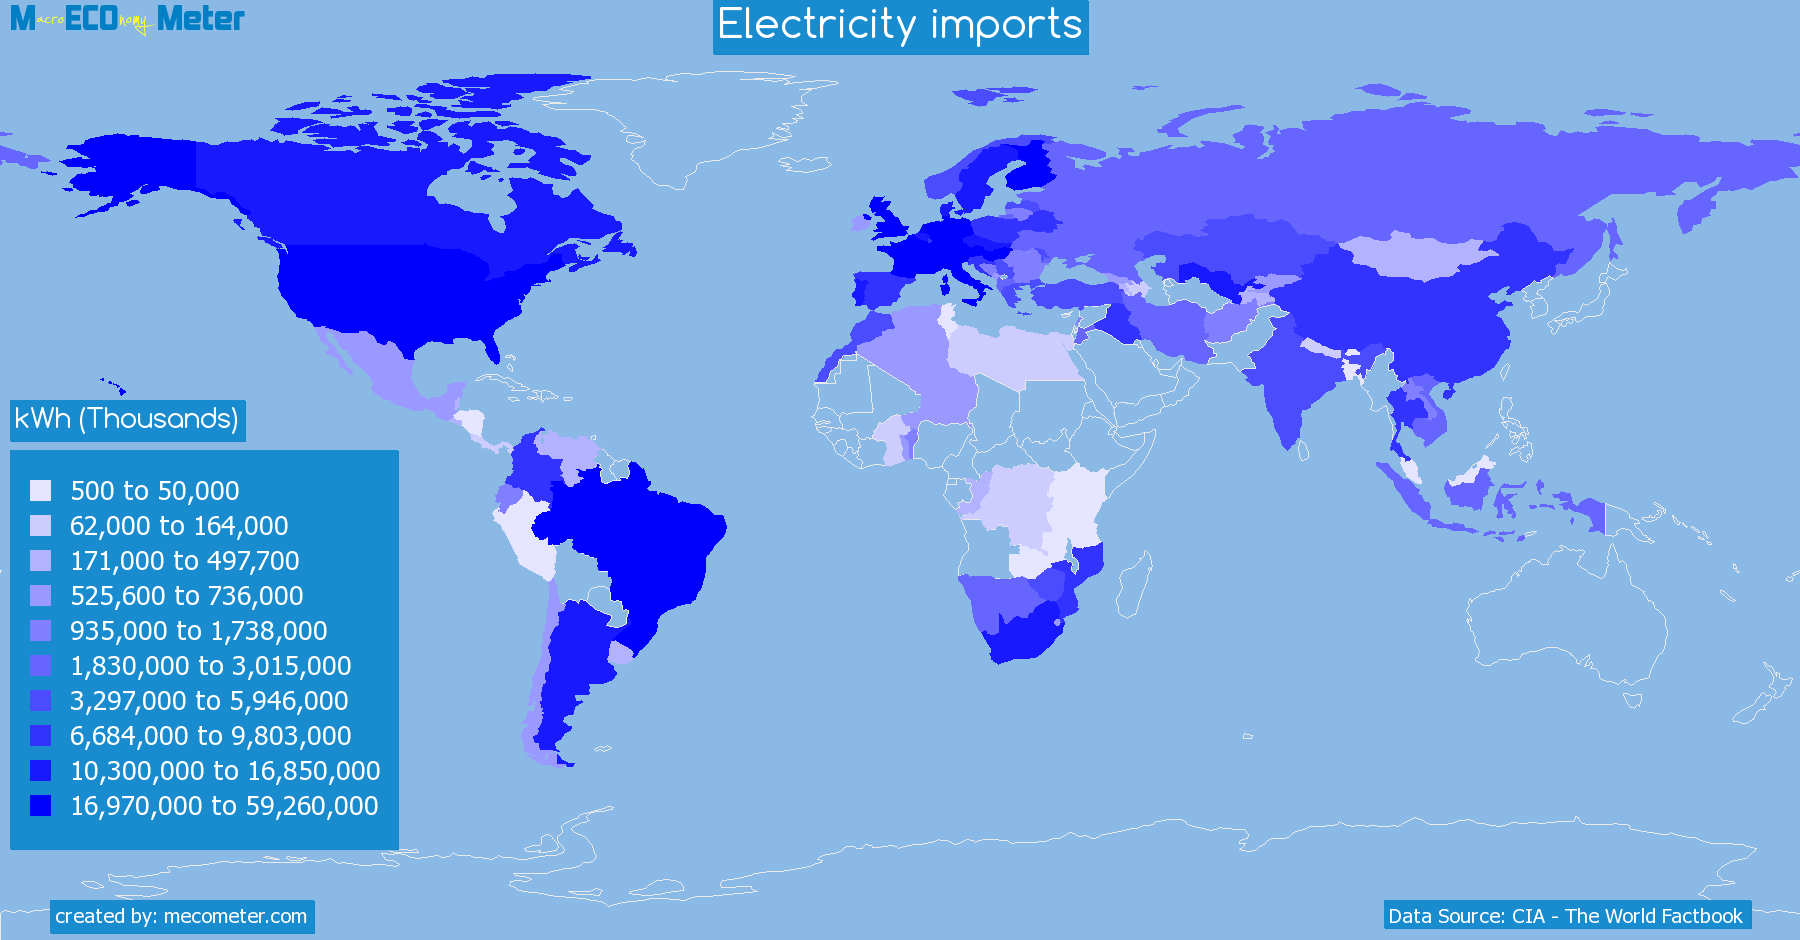 Worldmap of all countries colored to reflect the values of Electricity imports